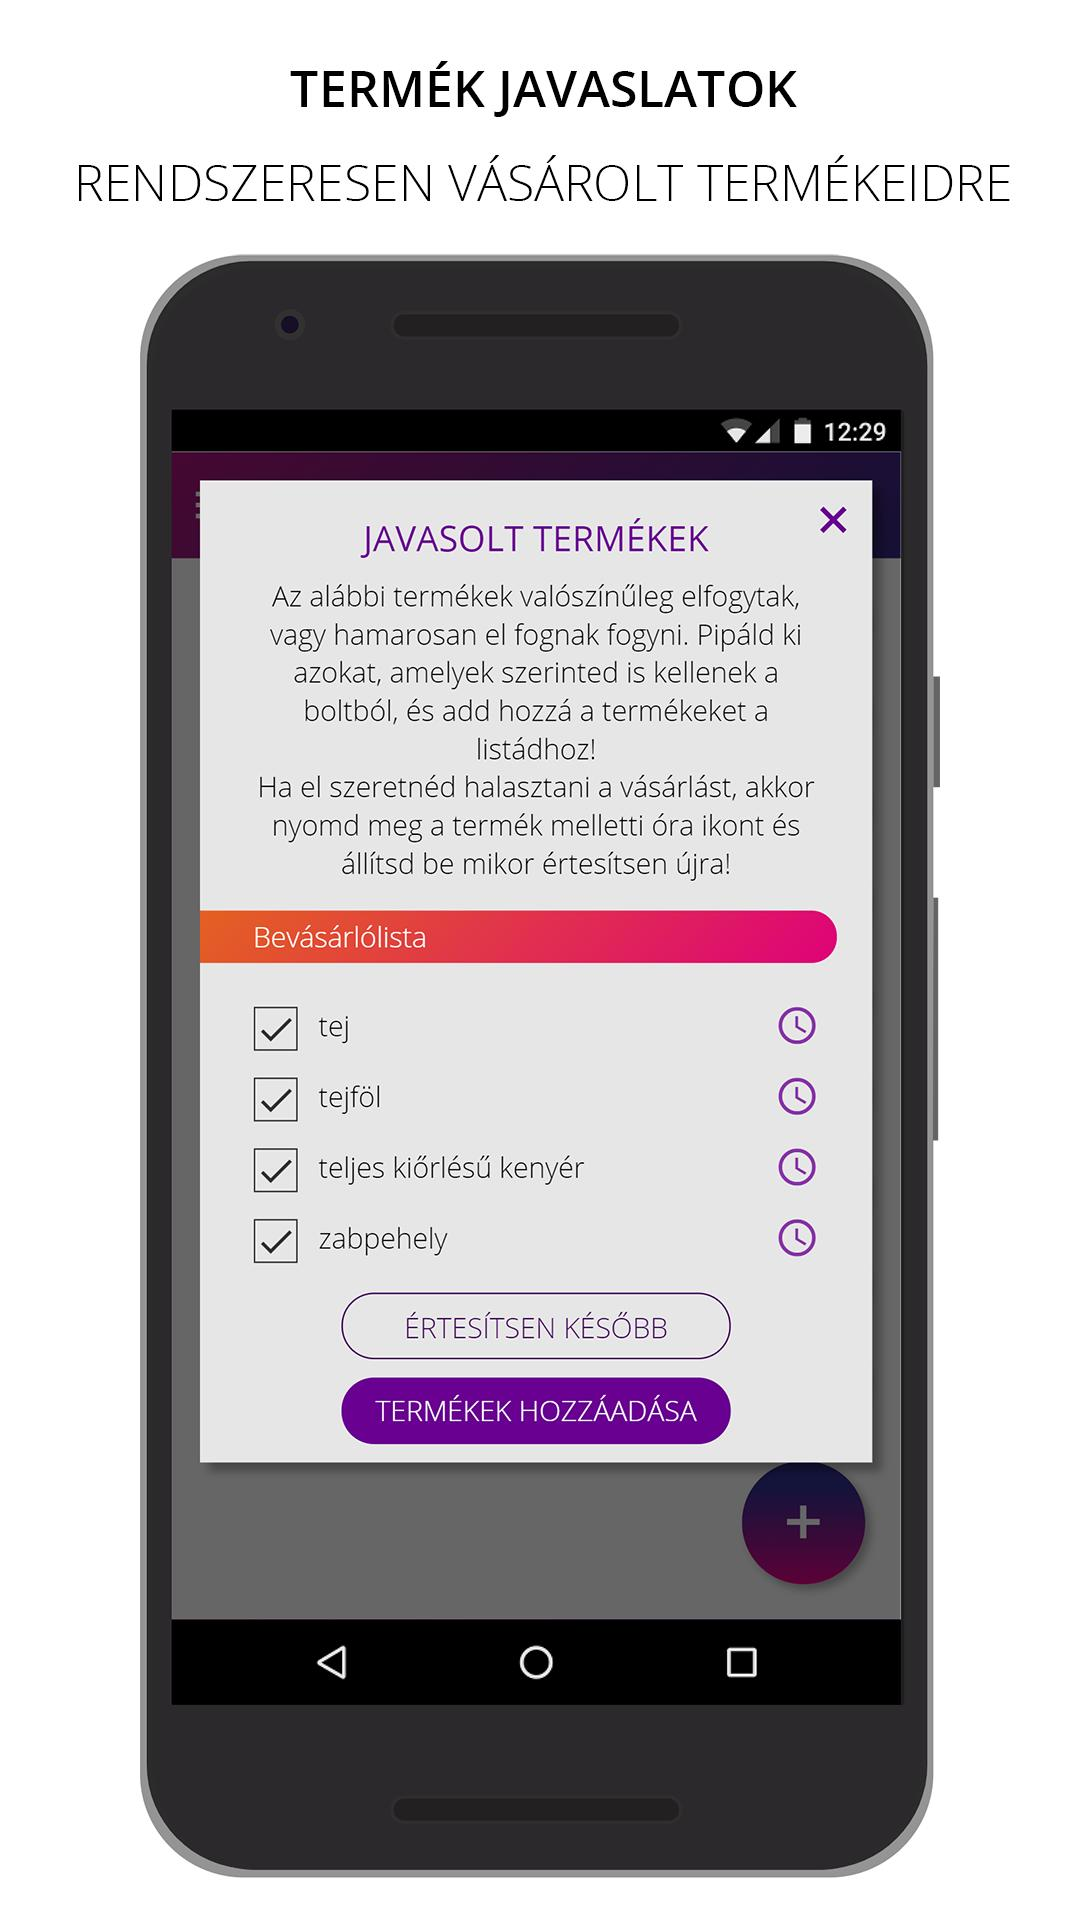 fogyni apps android